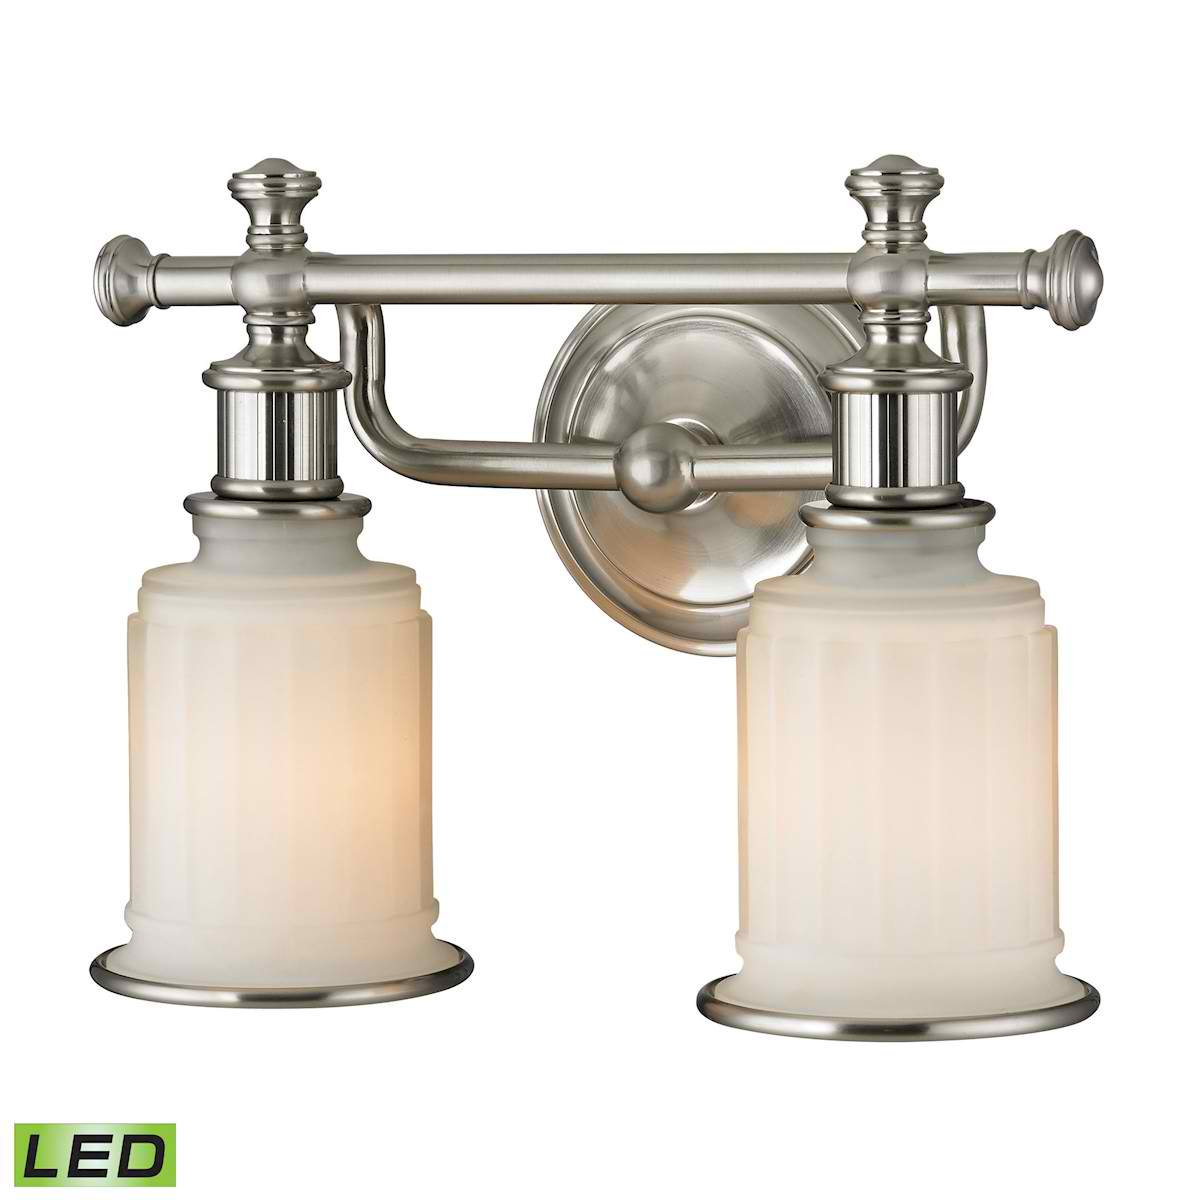 Acadia Collection 2 Light Bath in Brushed Nickel - LED, 800 Lumens (1600 Lumens Total) with Full Scale